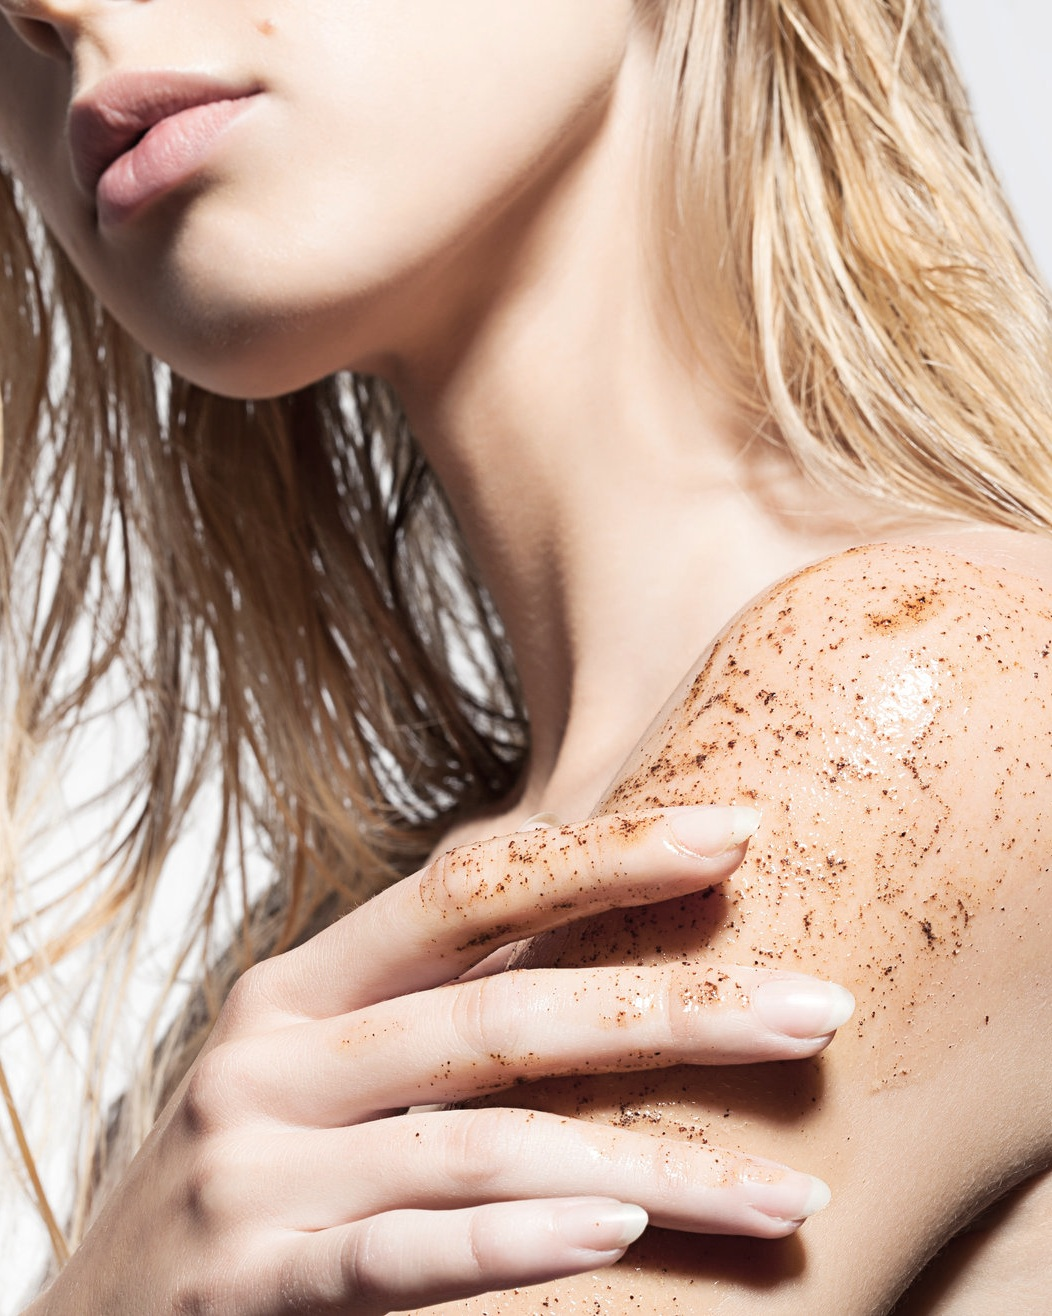 Body treatments - firm, revive, reveal